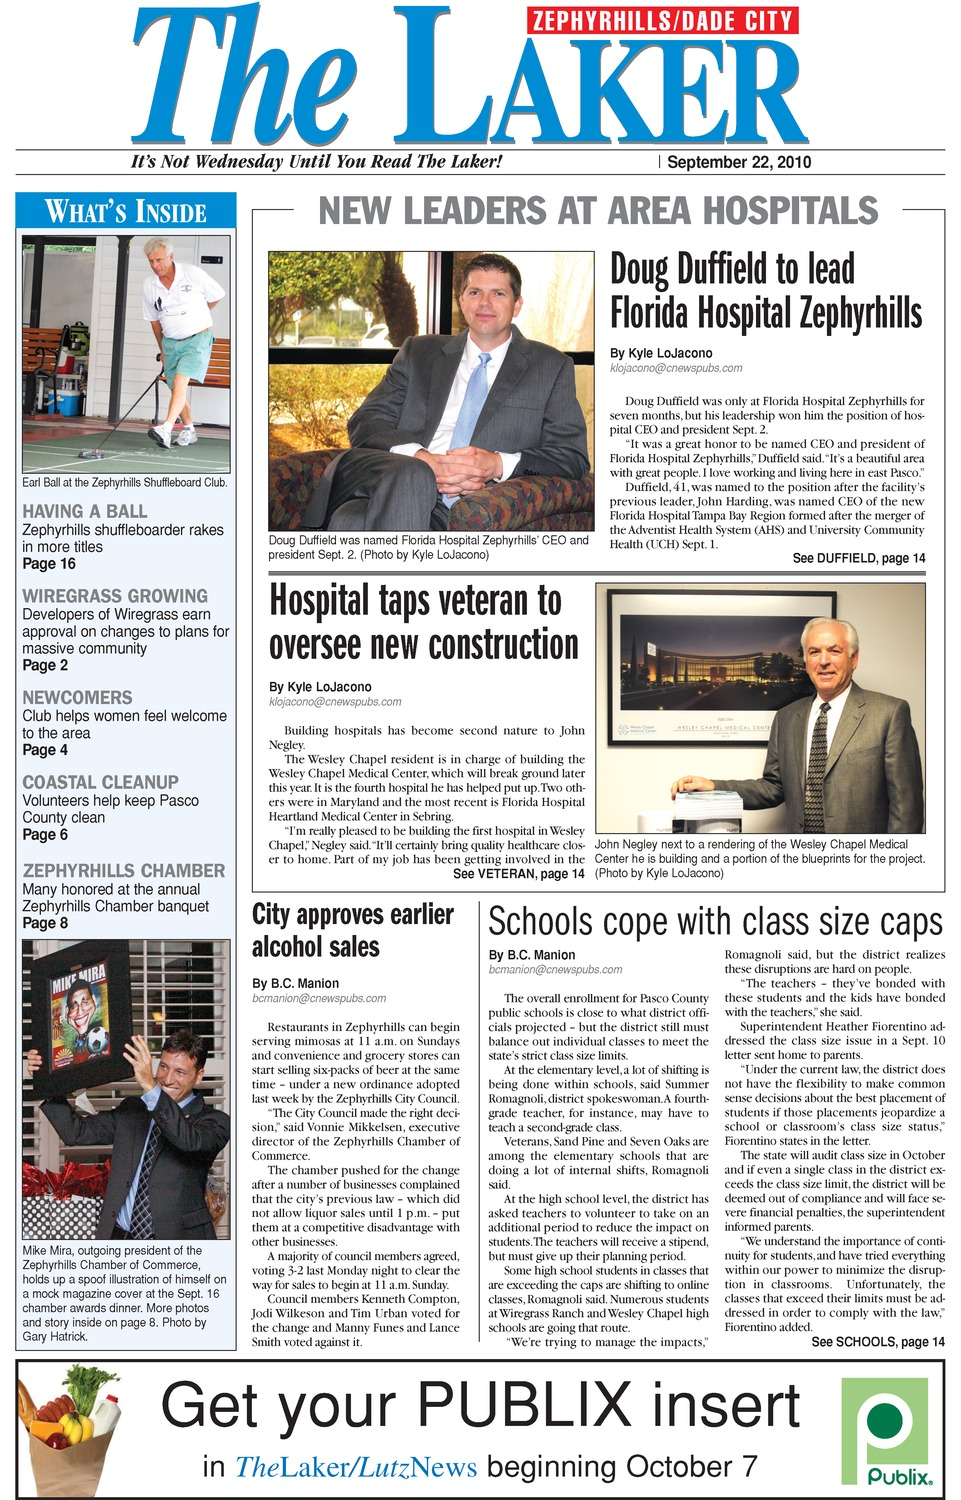 Laker (Zephyrhills edition) - Page 1